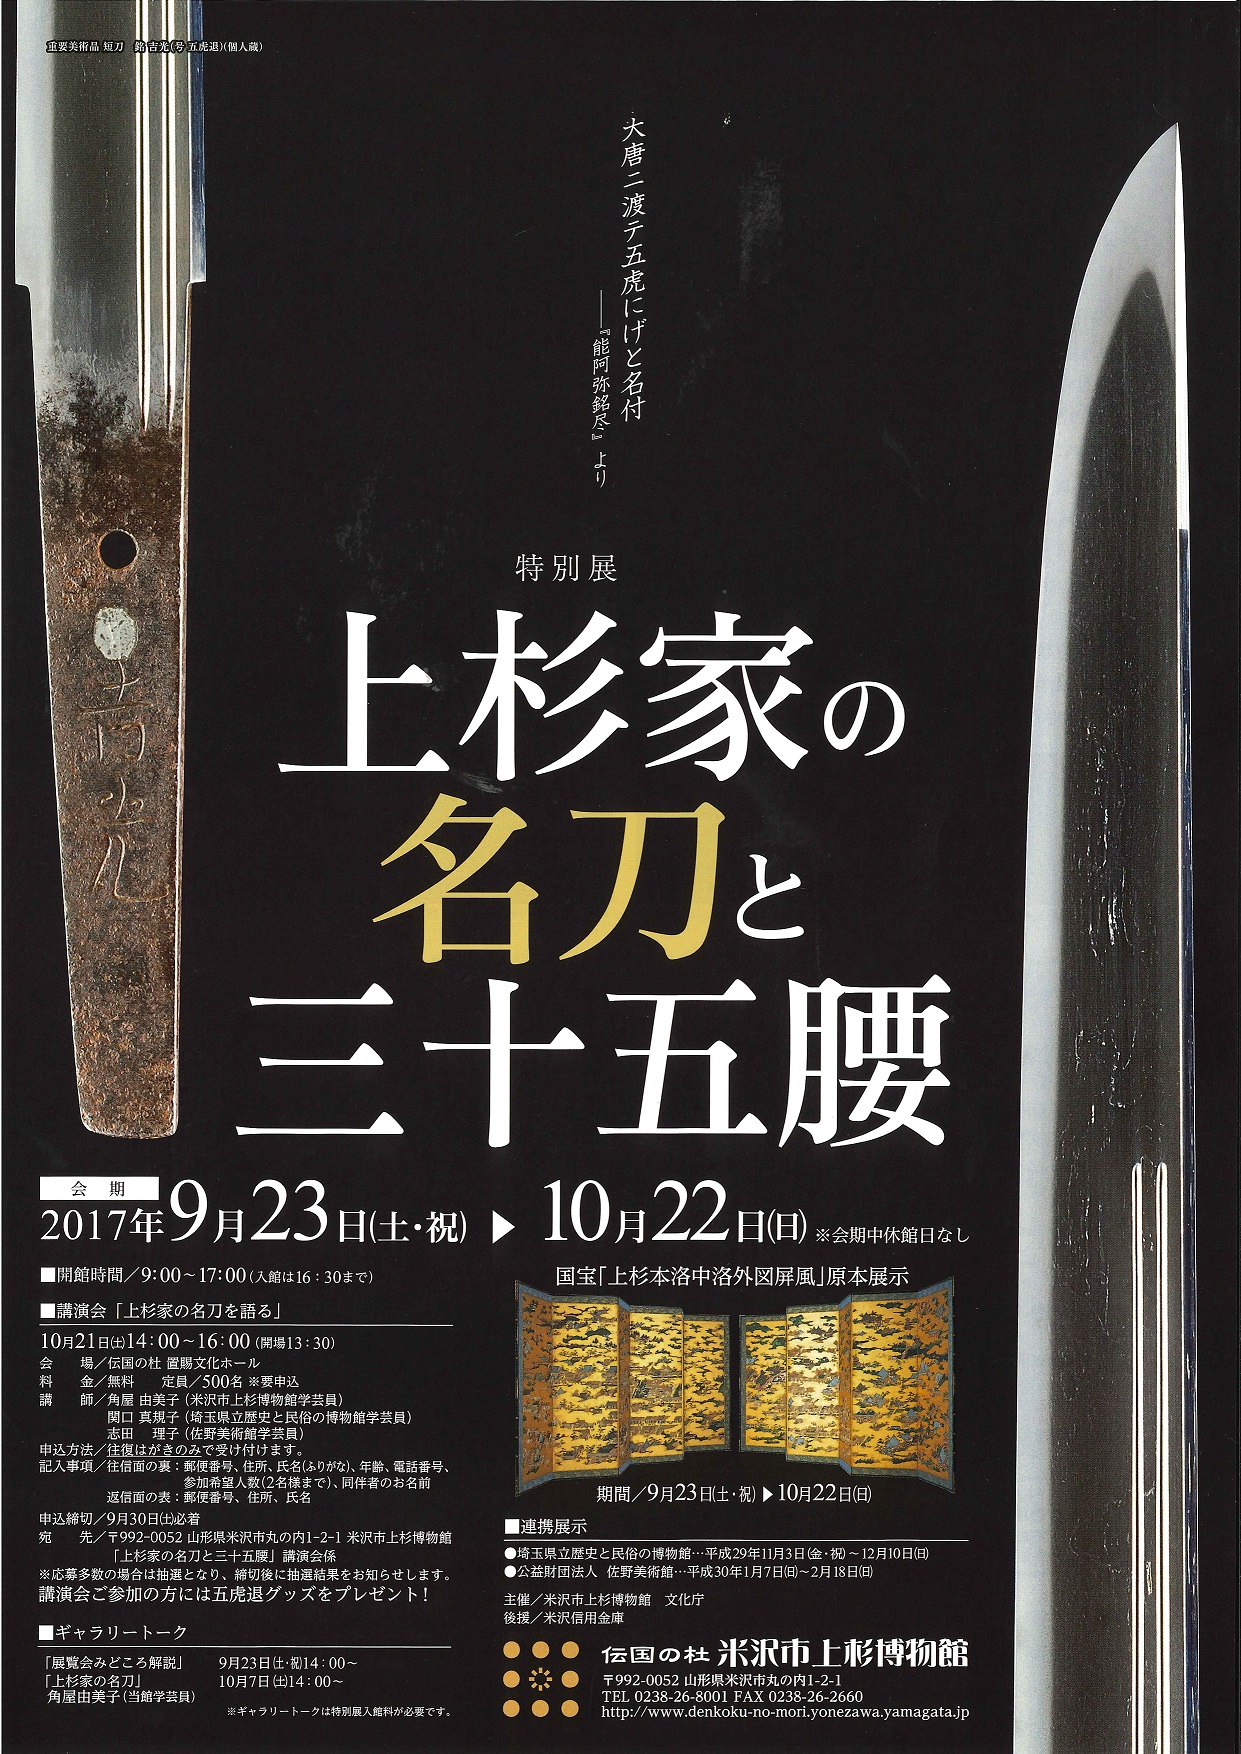 "Uesugi Museum temporary exhibition ""fine sword and 35 waist of person of Uesugi:"" Image"